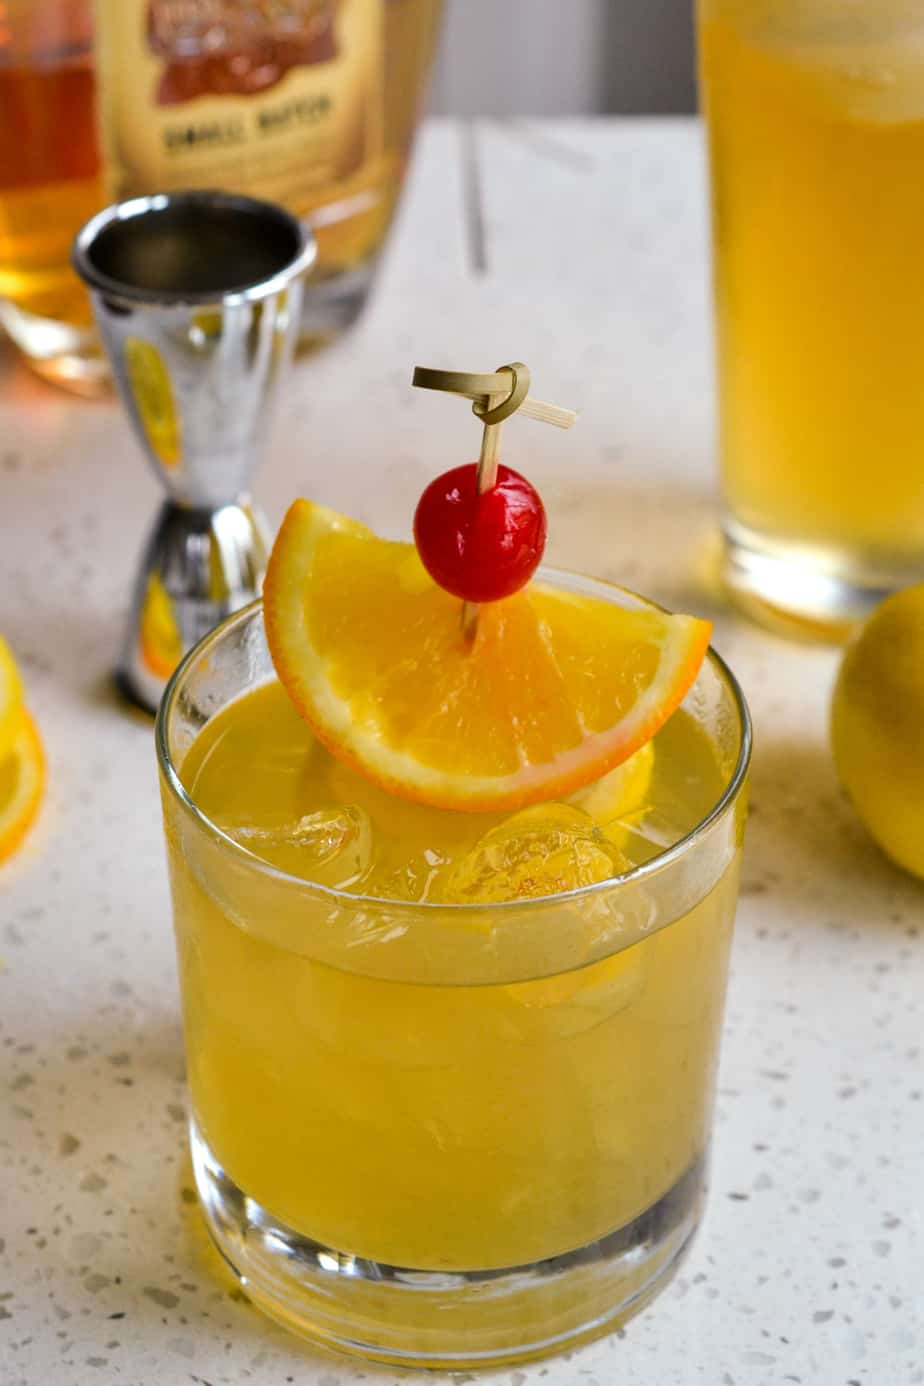 Ice cold whiskey sour over ice with a garnish